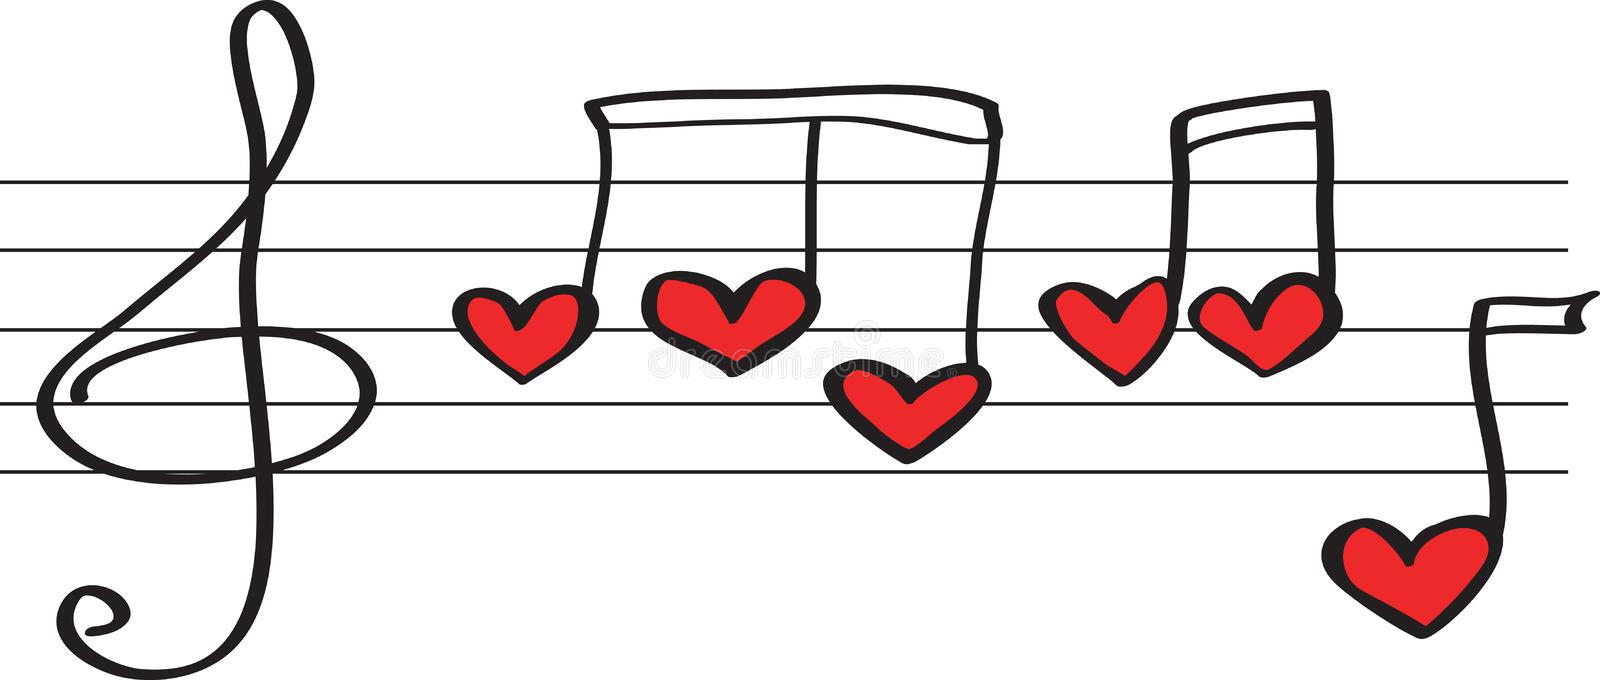 Notes in form hearts royalty free stock photography